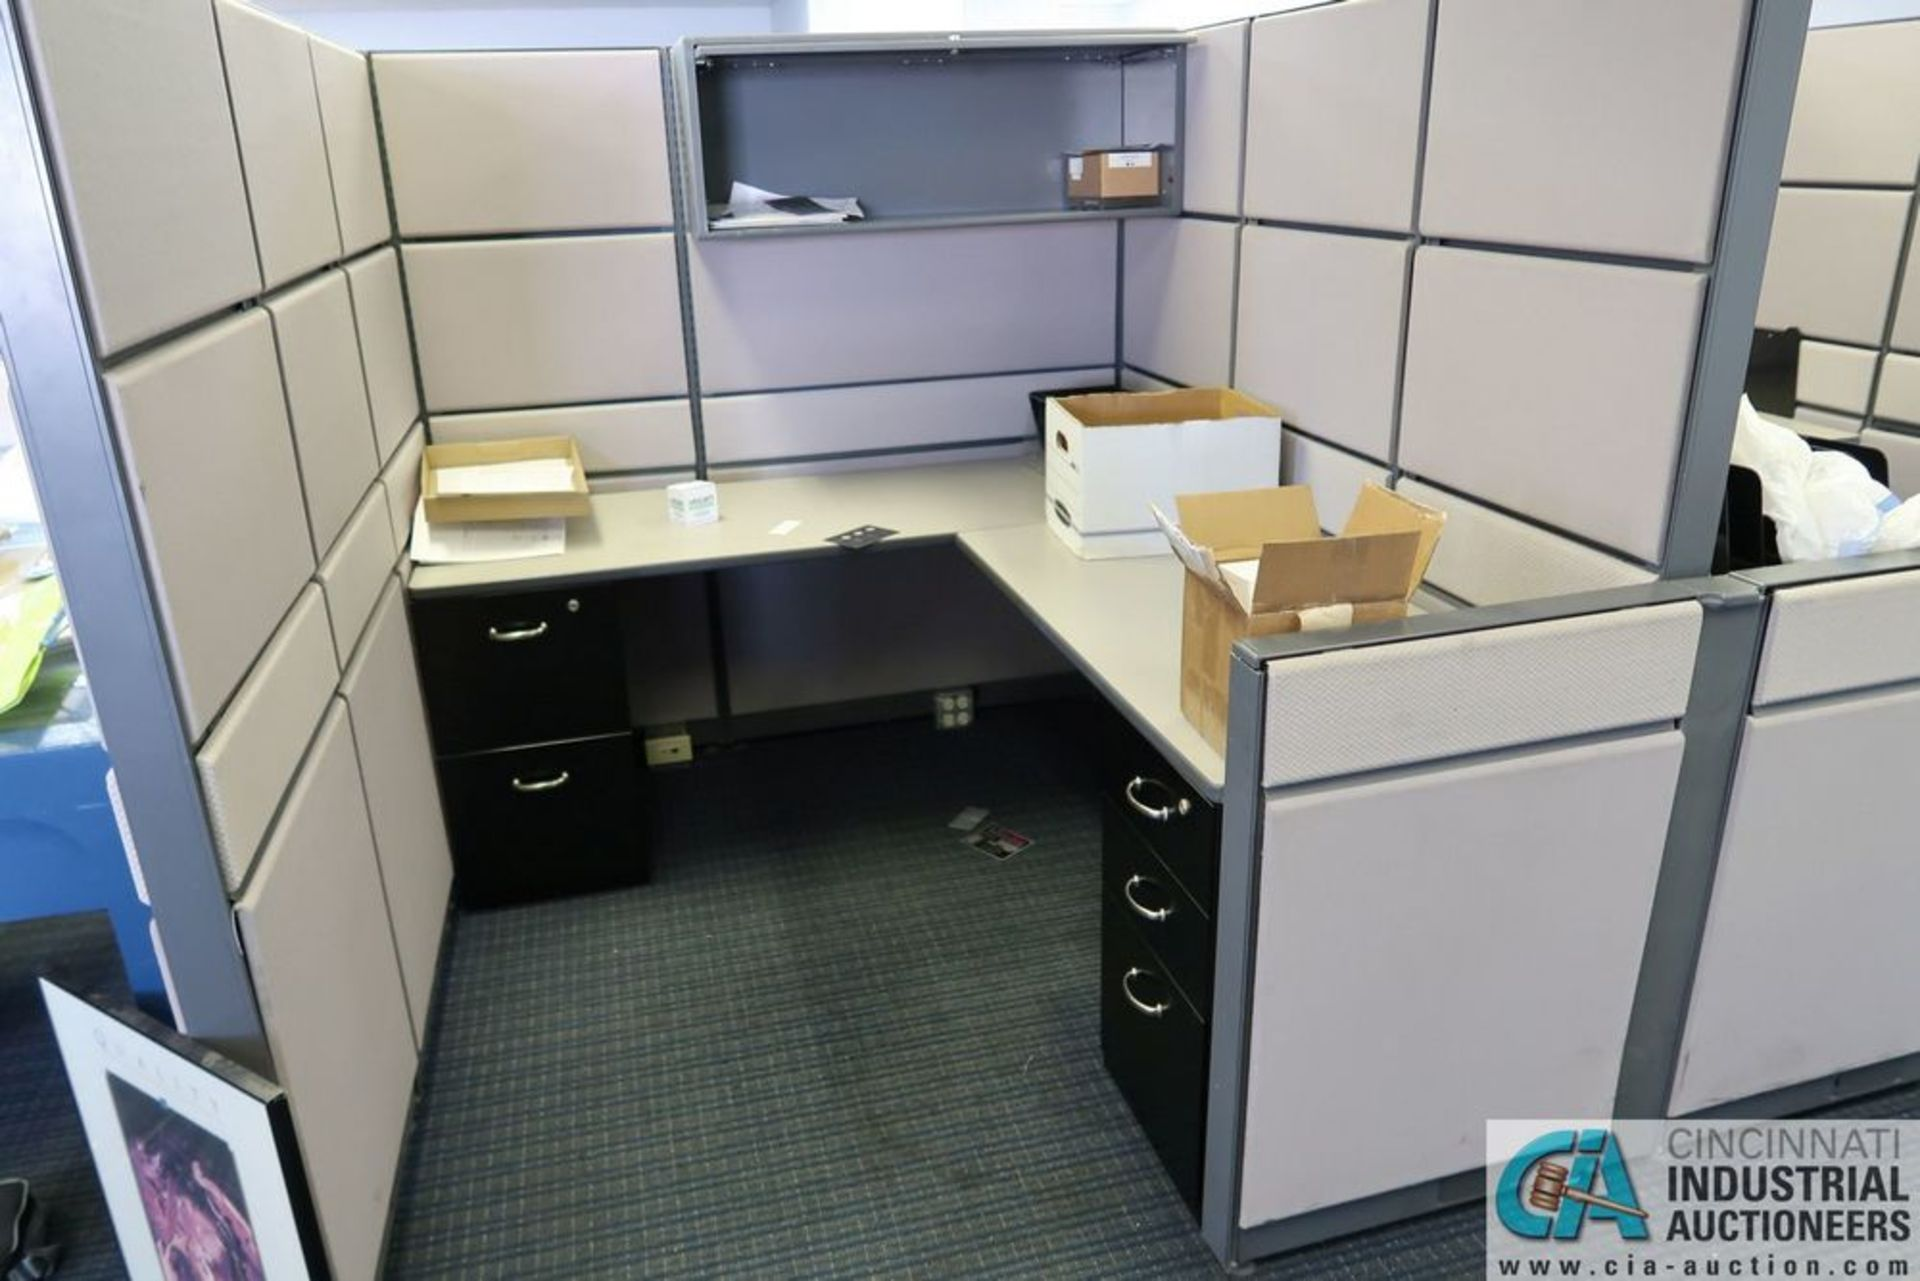 "(LOT) OFFICE CUBICLES, (2) 72"" X 72"", (2) 100"" X 92"", (2) 112"" X 96"", (1) 216"" X 72"" - Image 3 of 10"